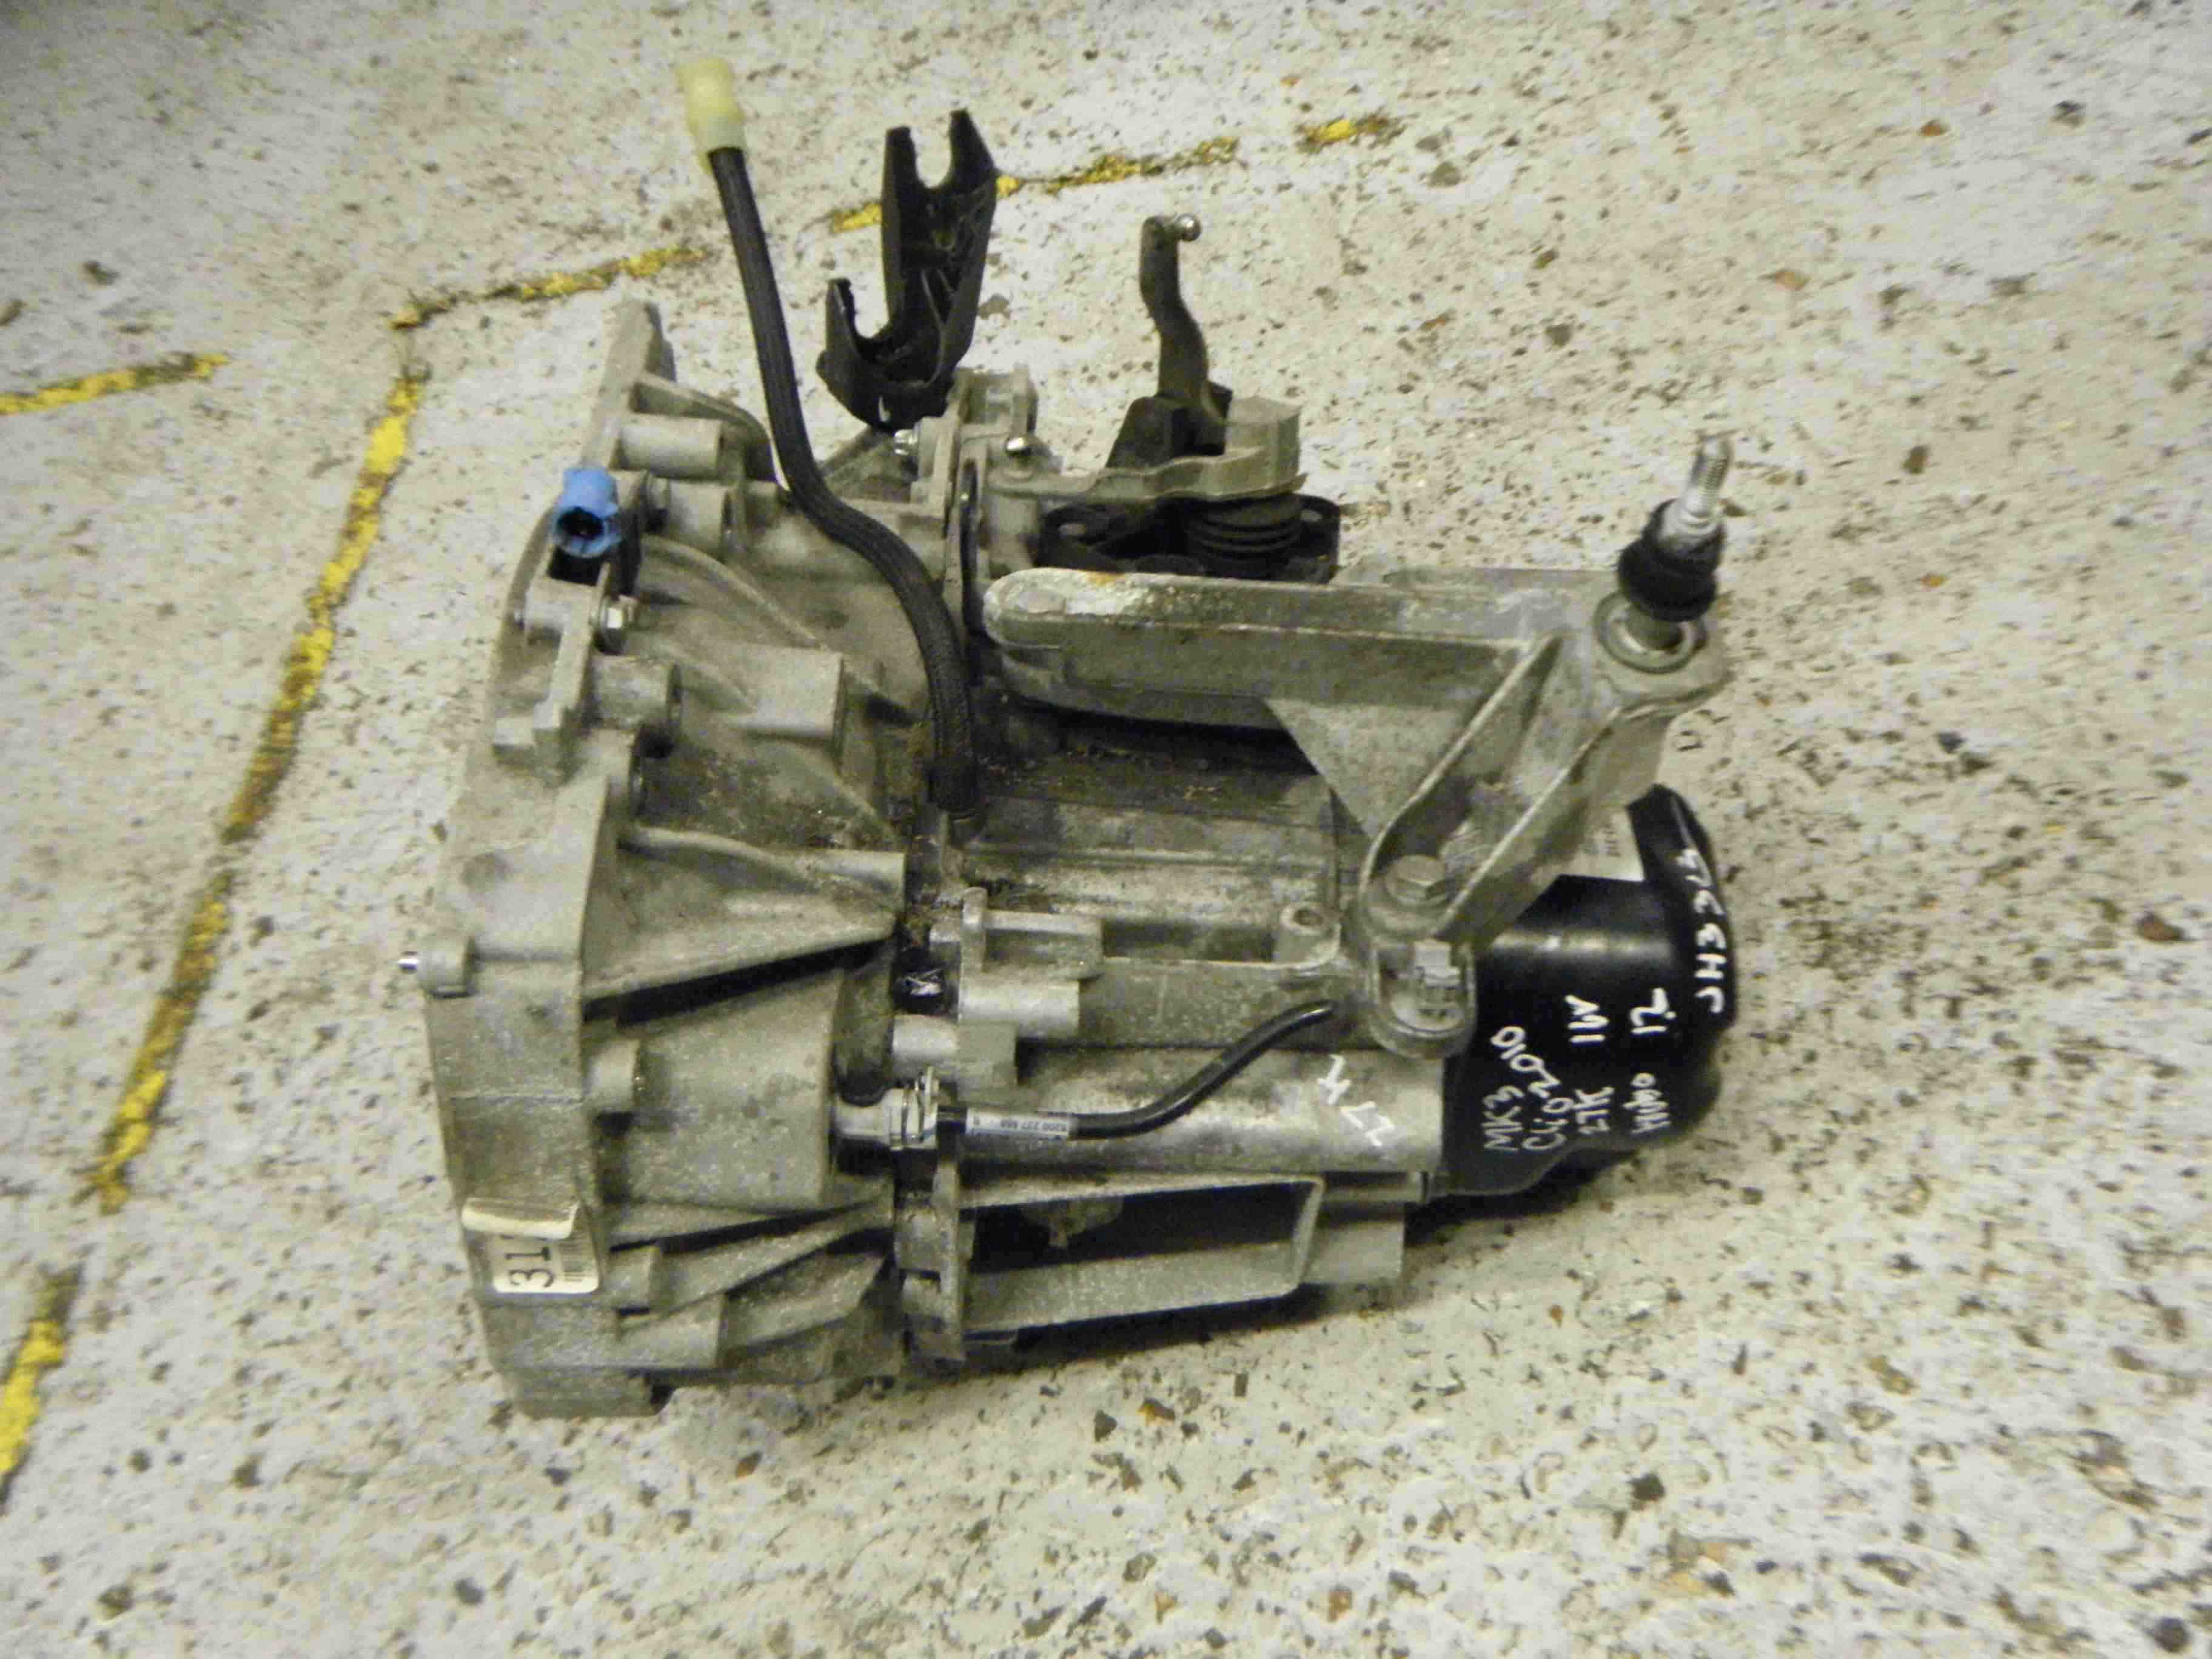 Renault Clio MK3 2005-2012 1.2 16v TCE Turbo Gearbox JH3 312 27k jh3312